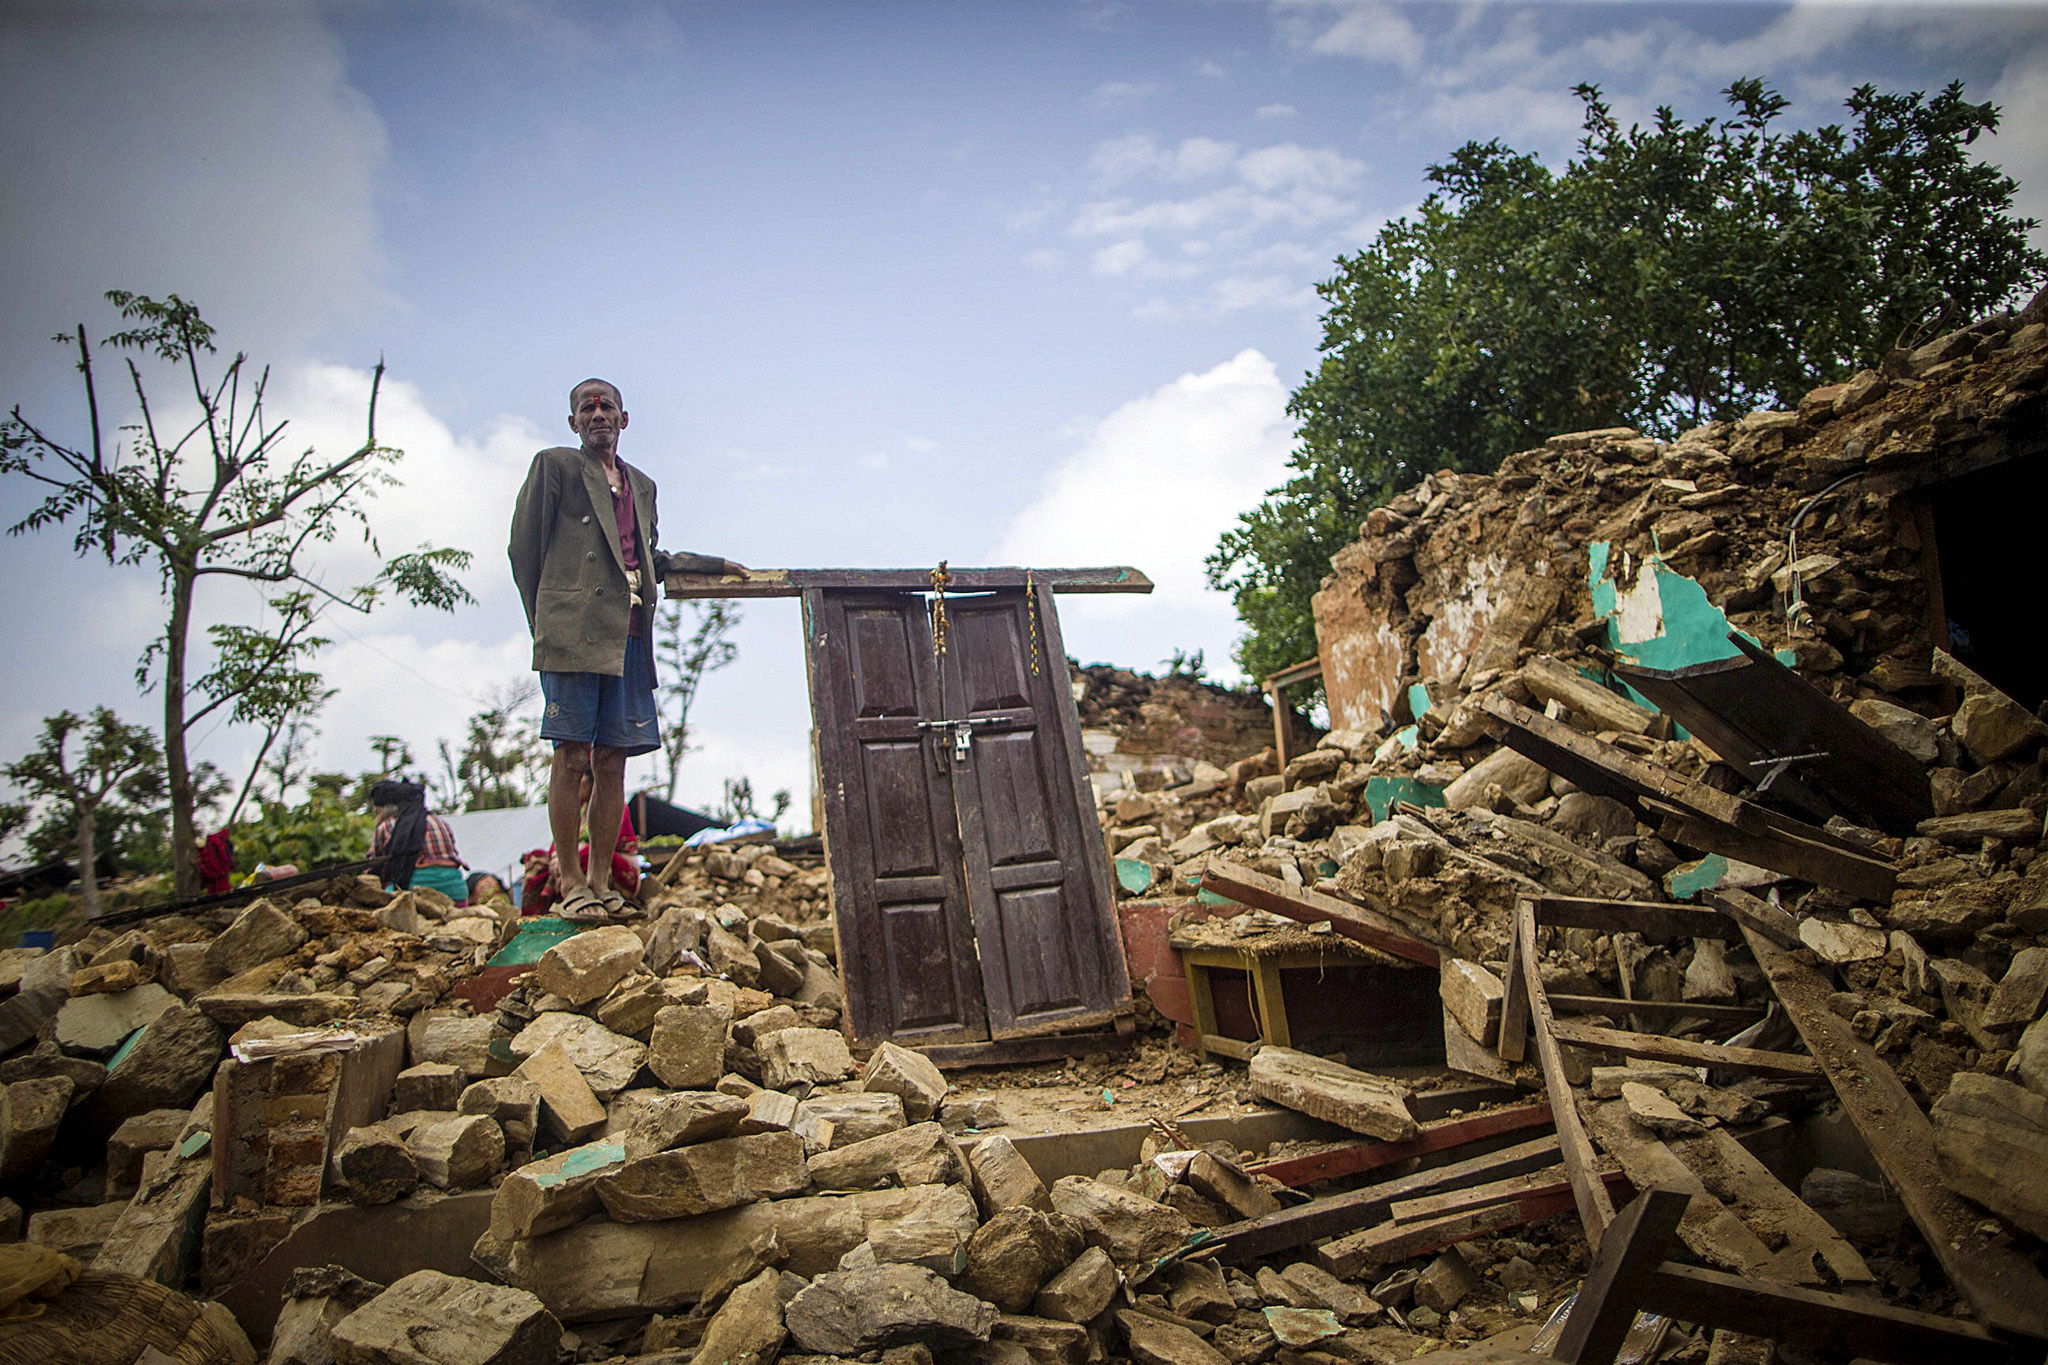 This photo taken on April 30, 2015 shows...This photo taken on April 30, 2015 shows an elderly man posing for a photo on the ruins of his damaged home in Paslang village in Gorkha, Nepal. Desperate survivors living at ground zero of Nepal's earthquake felt abandoned to their fate on May 1 after losing their loved ones and livelihoods in a disaster that has claimed more than 6,300 lives.     CHINA OUT   AFP PHOTOSTR/AFP/Getty Images